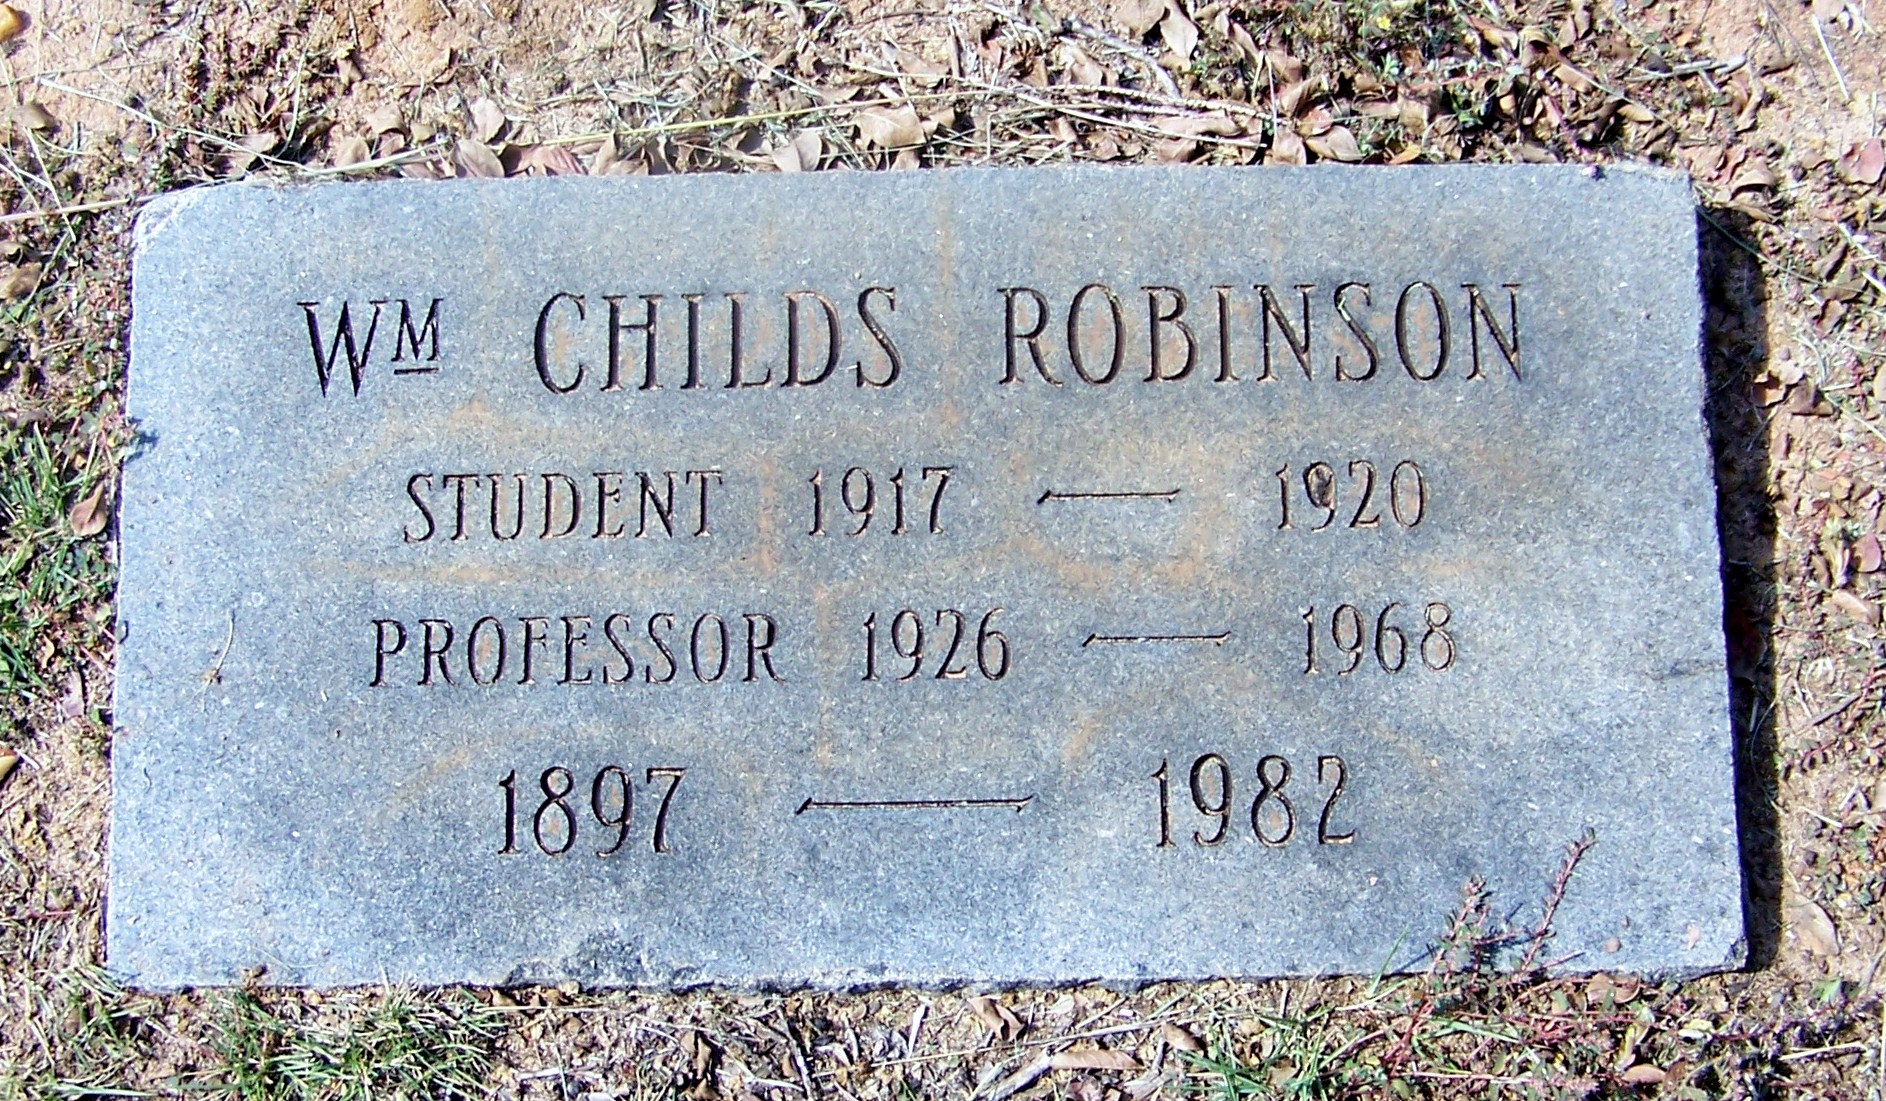 William Childs Robinson is buried at Elmwood Cemetery, Columbia, South Carolina.